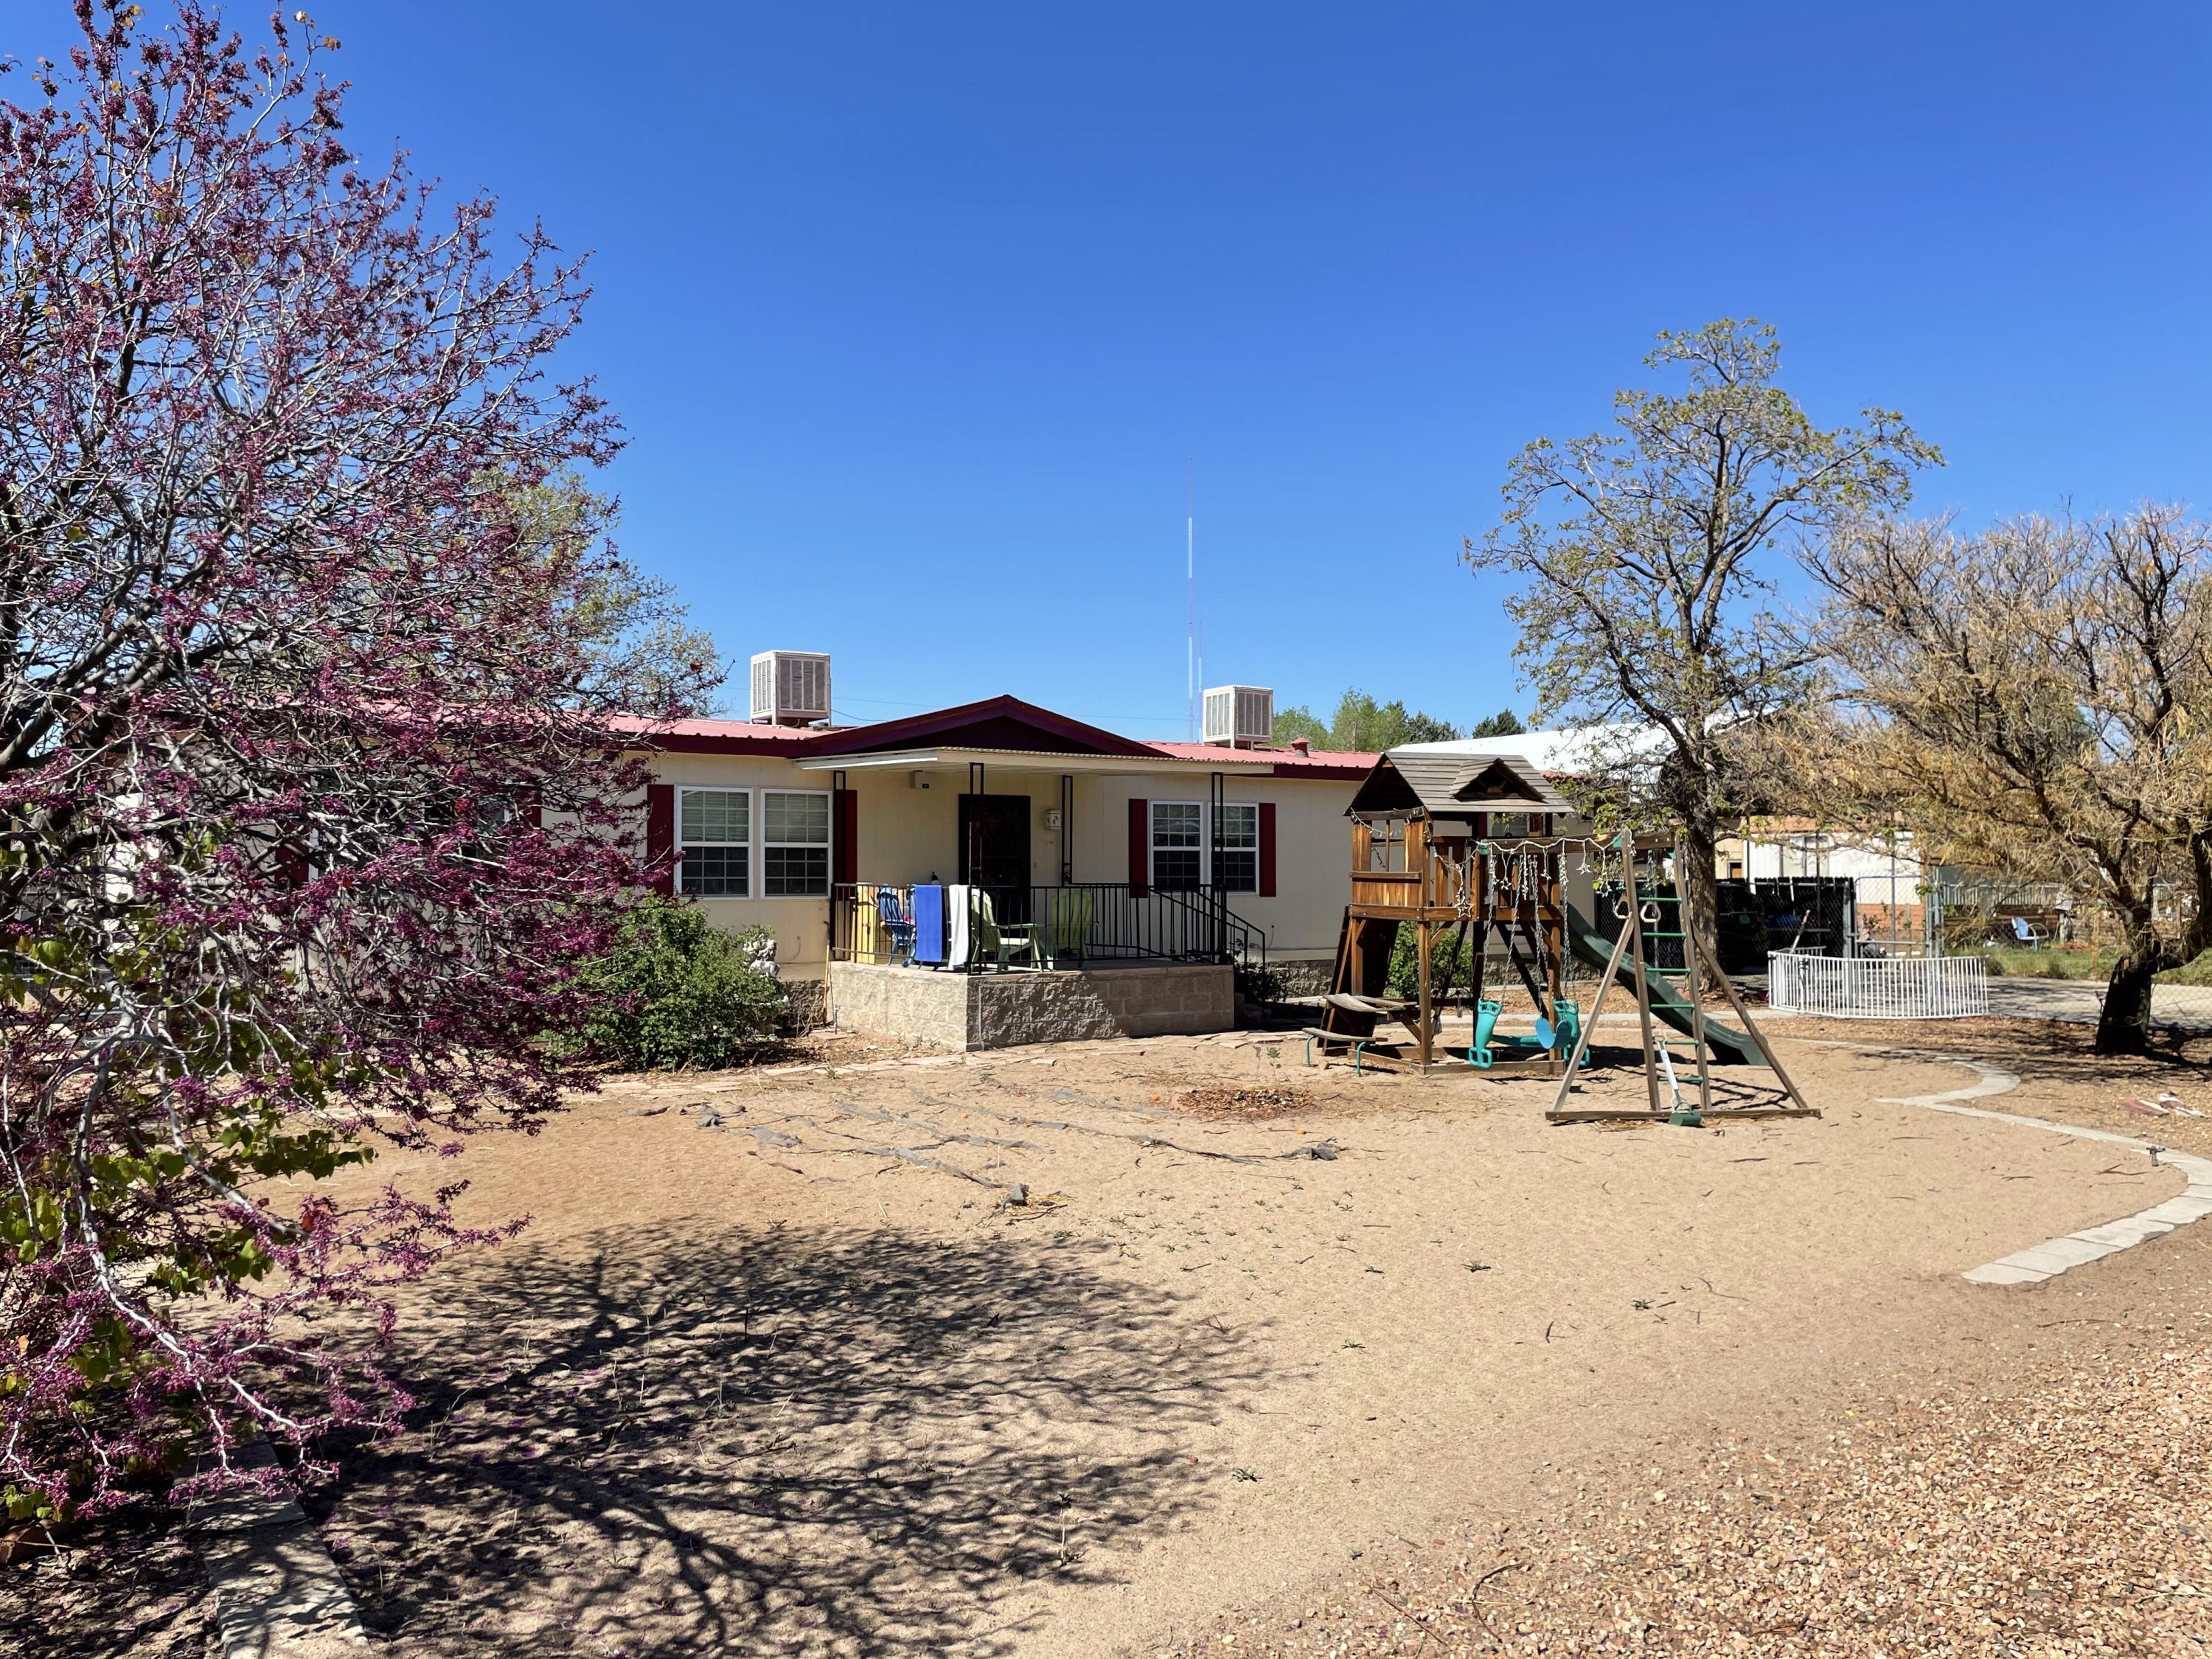 What an amazing opportunity to live in the North Valley on a half acre for under $150K! This 3 bed, 2 bath home has so much to offer - wide open living spaces, pellet stove, all appliances convey including 5-burner gas range, washer and dryer, plus an extra refrigerator, large pantry, walk-in closets in all rooms, lots of storage spaces, covered front porch, large sunroom on back of house, carport and the whole half acre is fully fenced. The views from the front porch are stunning - mountain views all year long plus a front row seat to the Balloon Fiesta and firework shows throughout the year. The possibilities are endless with this property, don't miss your chance to make this your new home!